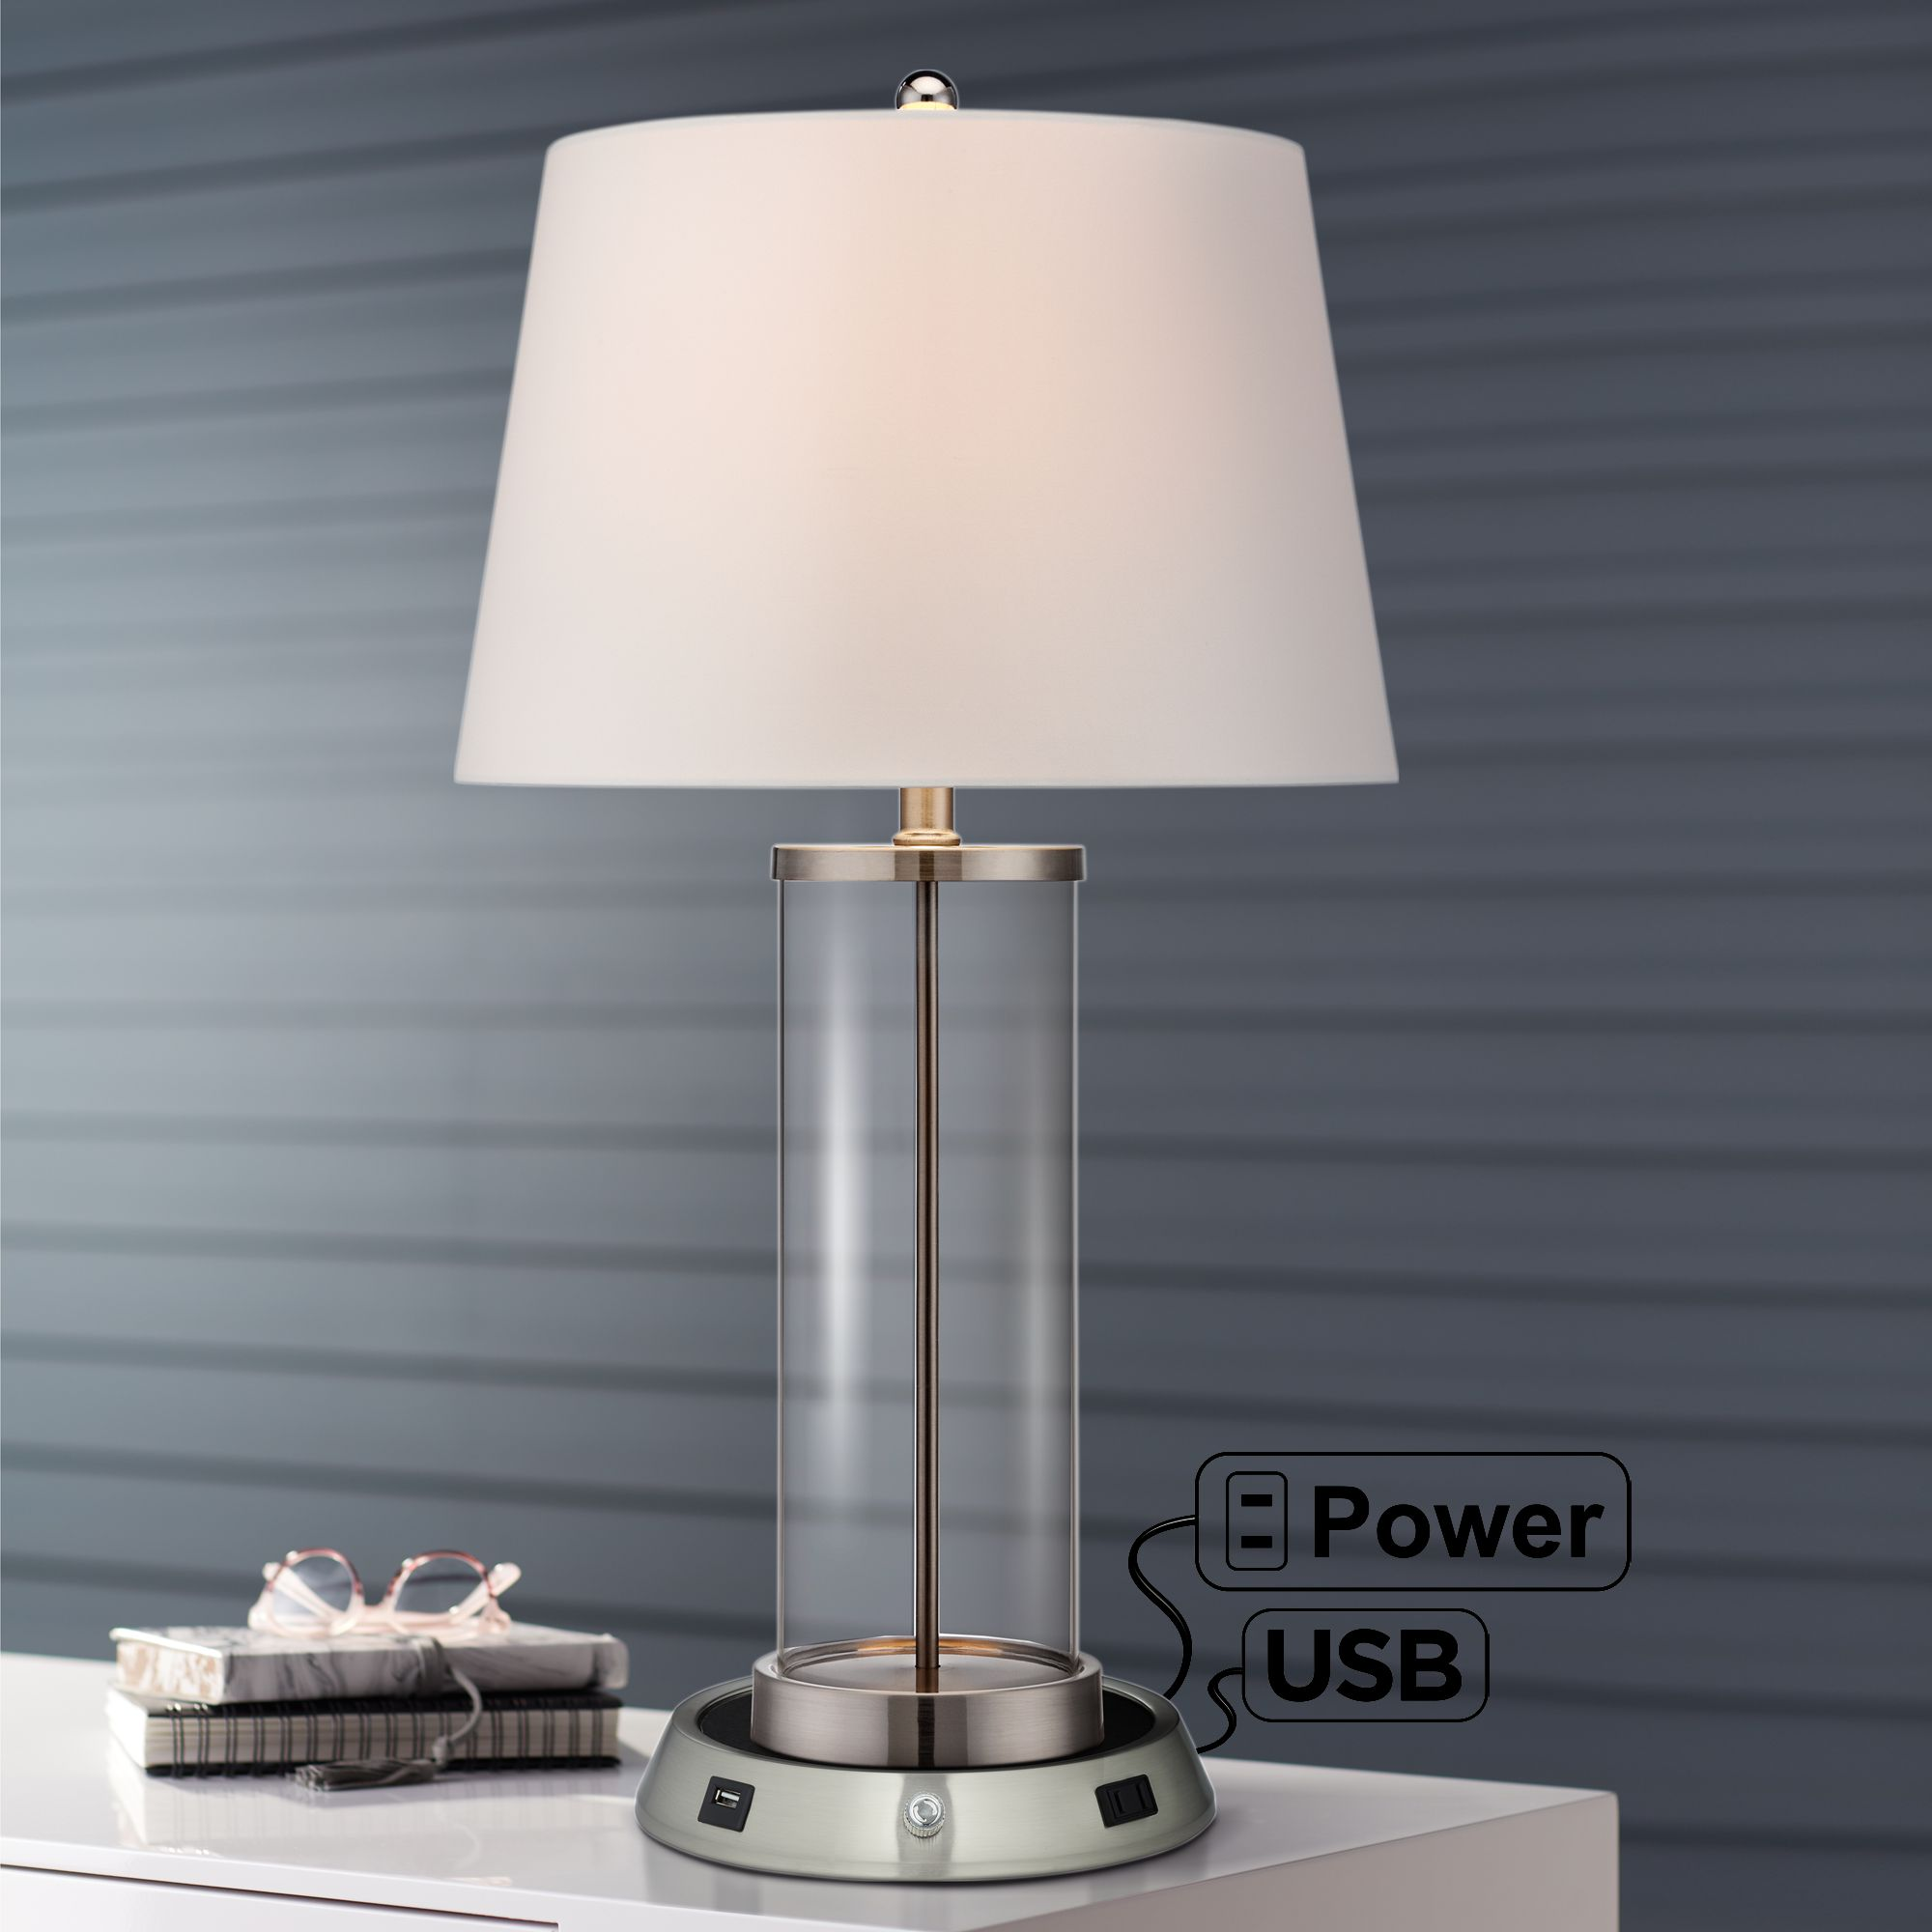 360 Lighting Modern Table Lamp With Dimmable Usb And Ac Power Outlet Workstation Base Fillable Clear Glass Nickel For Living Room Walmart Com Walmart Com